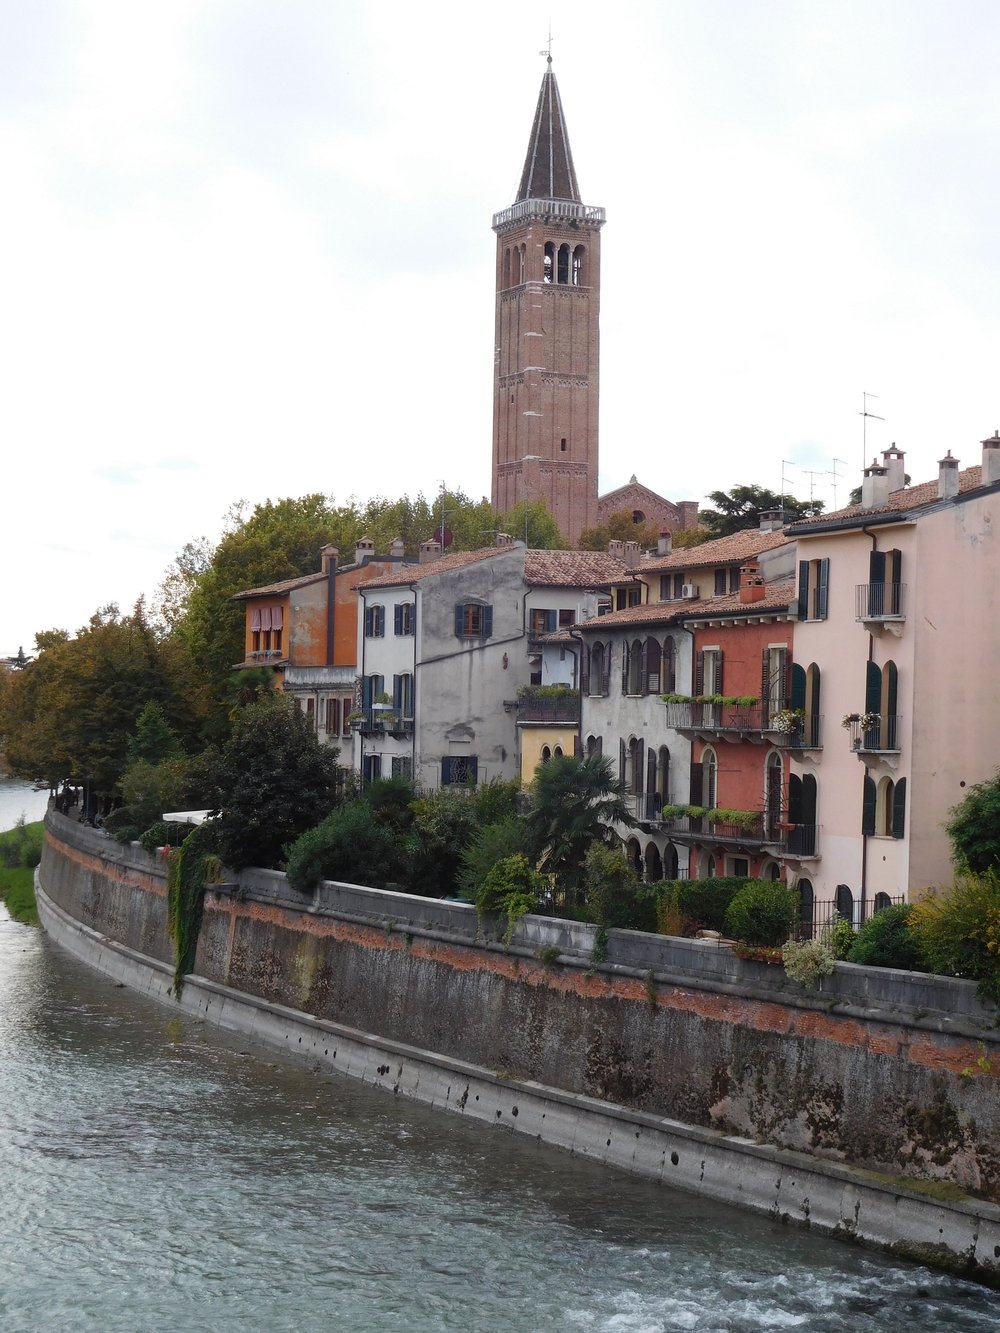 The river Adige in the heart of Verona